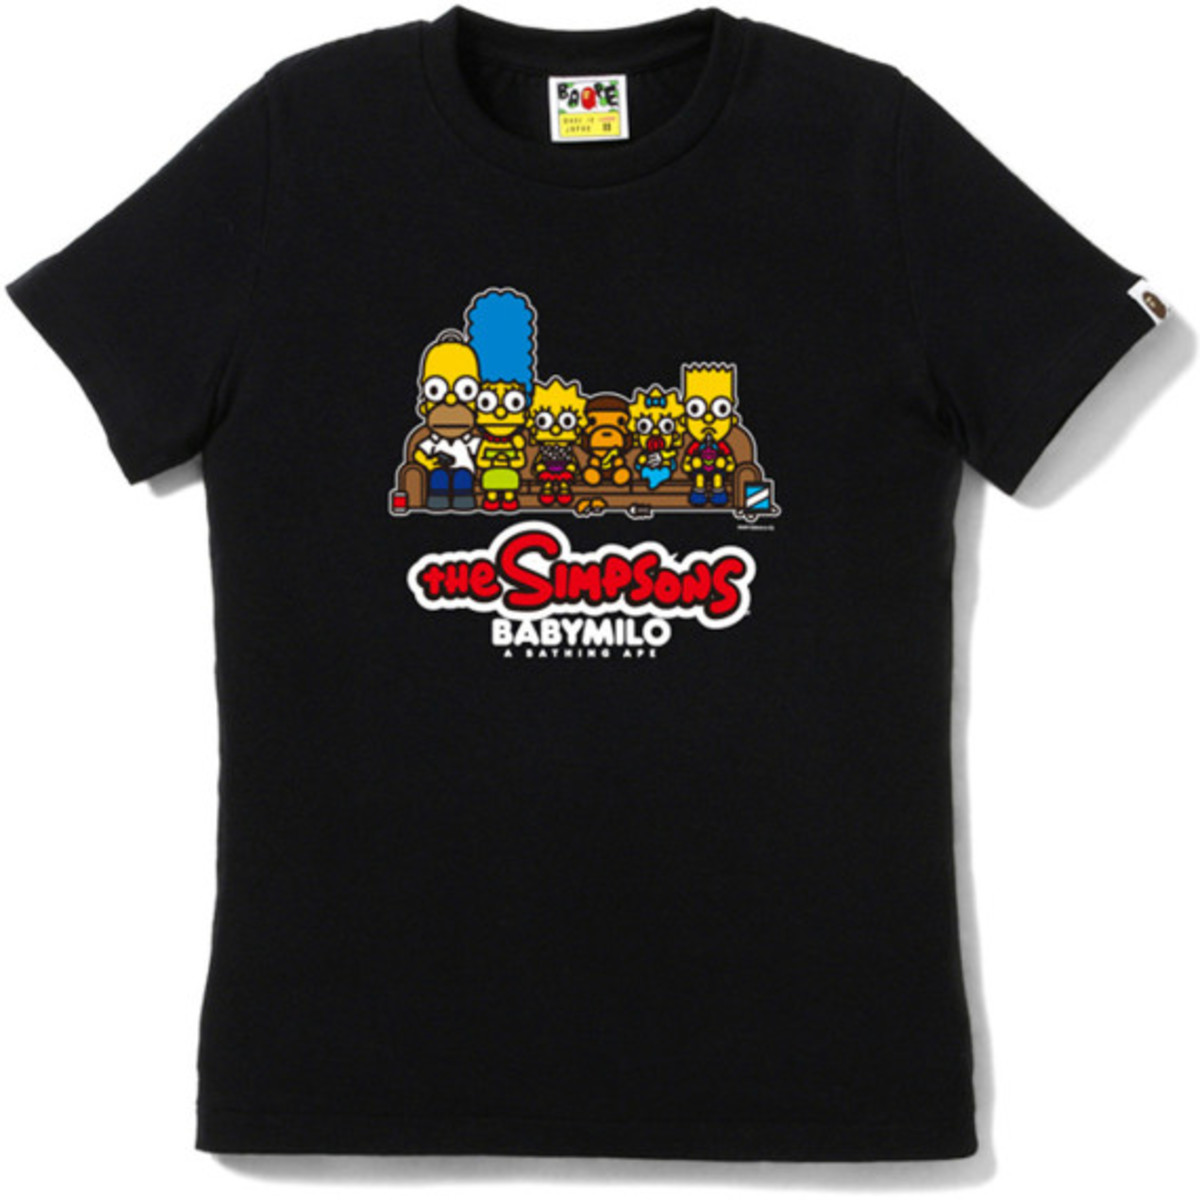 the-simpsons-bape-collection-available-17